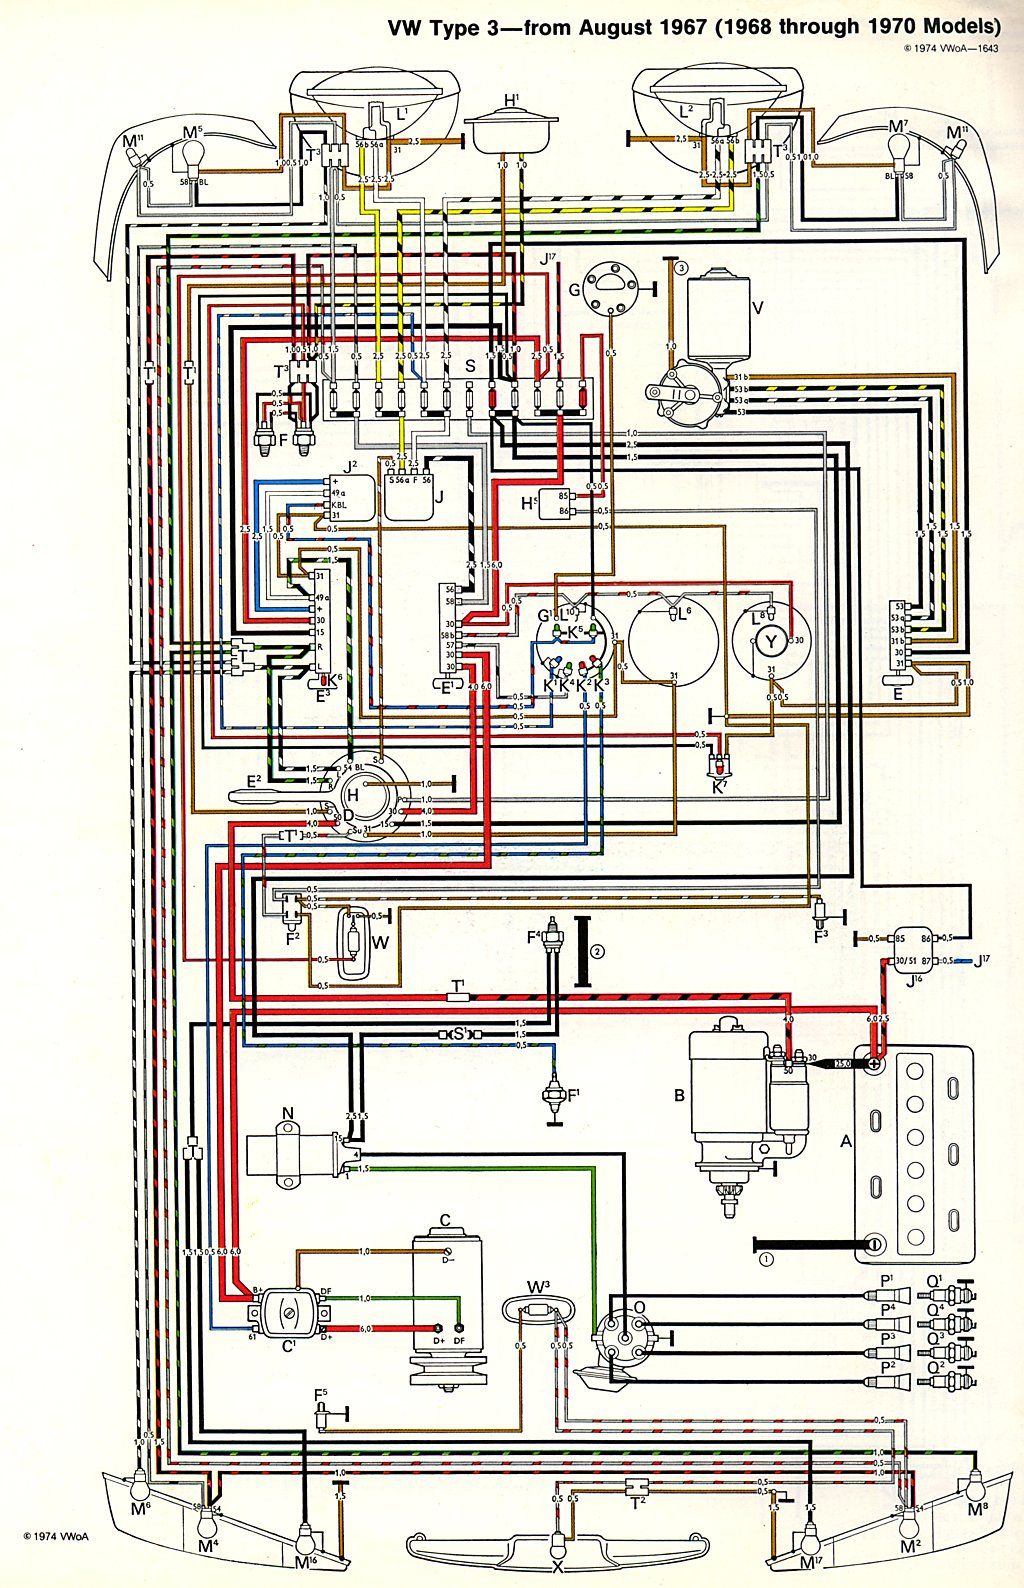 4 way switch wiring diagram for a circular saw type 3 wiring diagram dat wiring diagrams  type 3 wiring diagram dat wiring diagrams